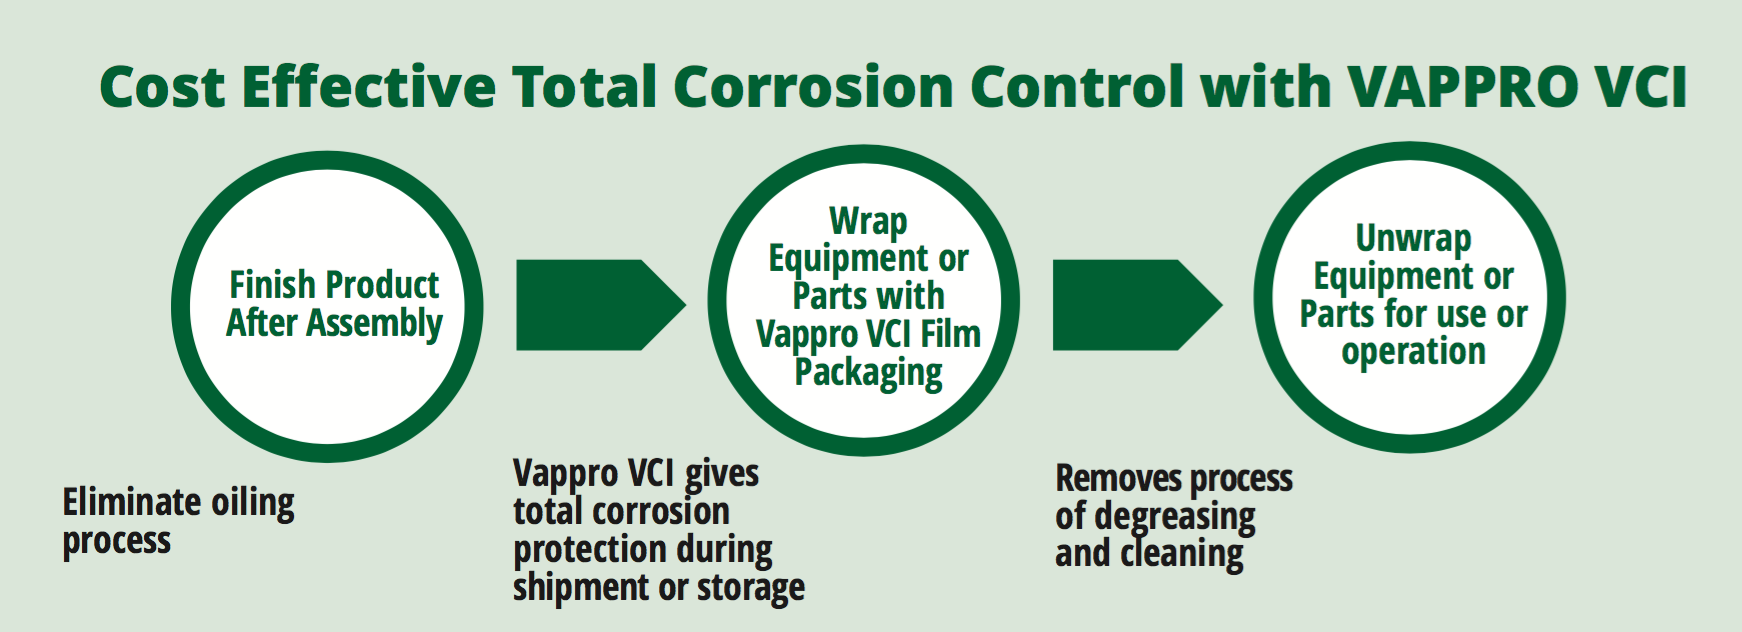 Vappro VCI Total Corrosion Control